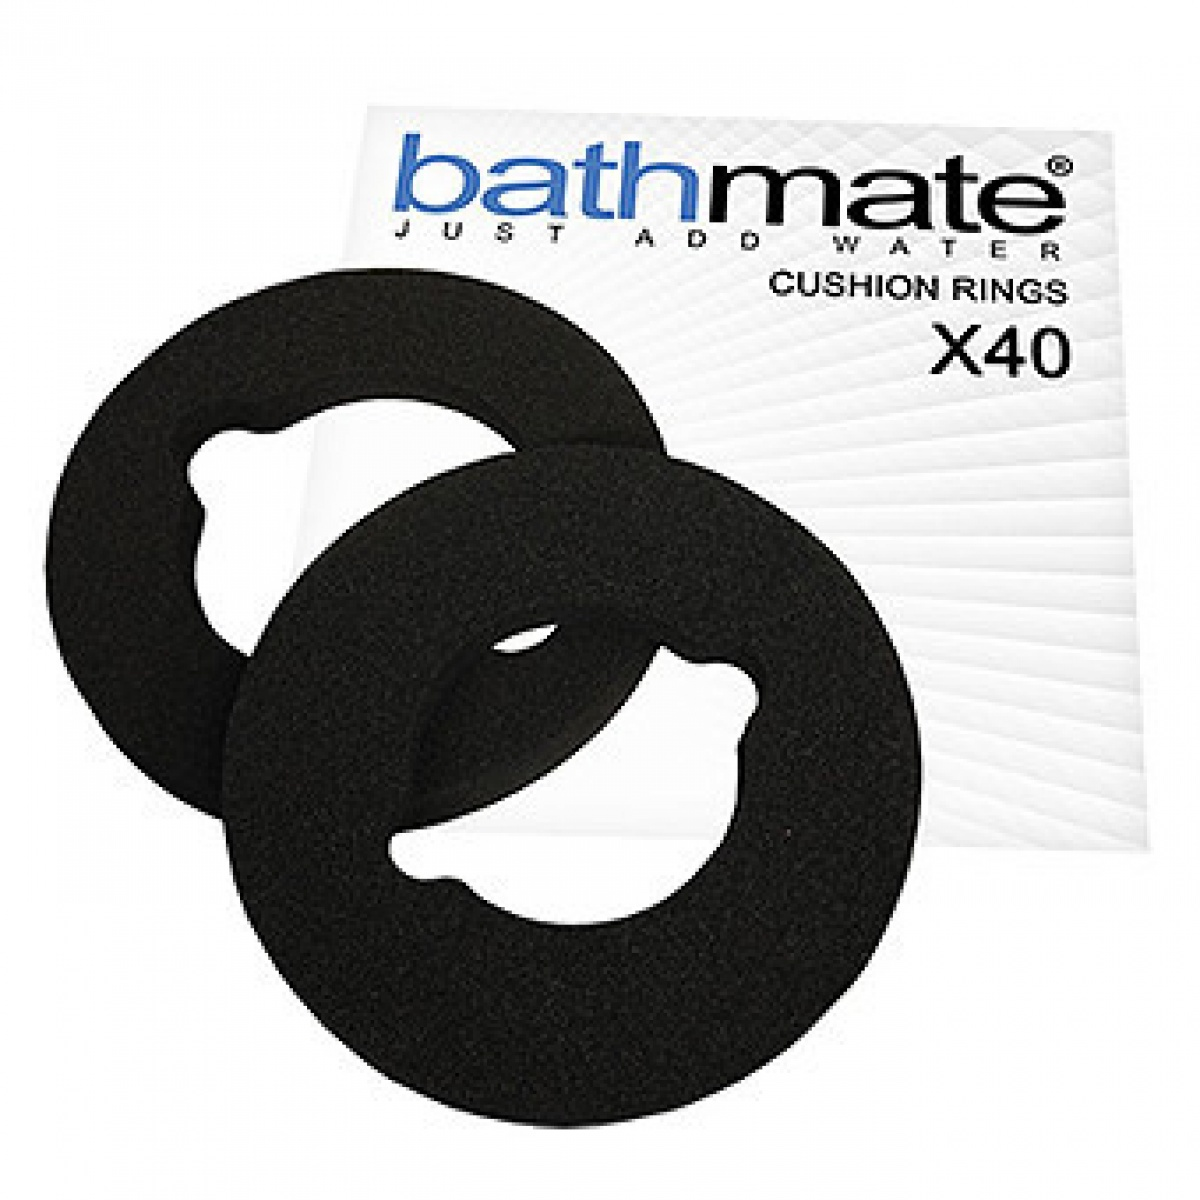 ULT Bathmate X40 Cushion Pad